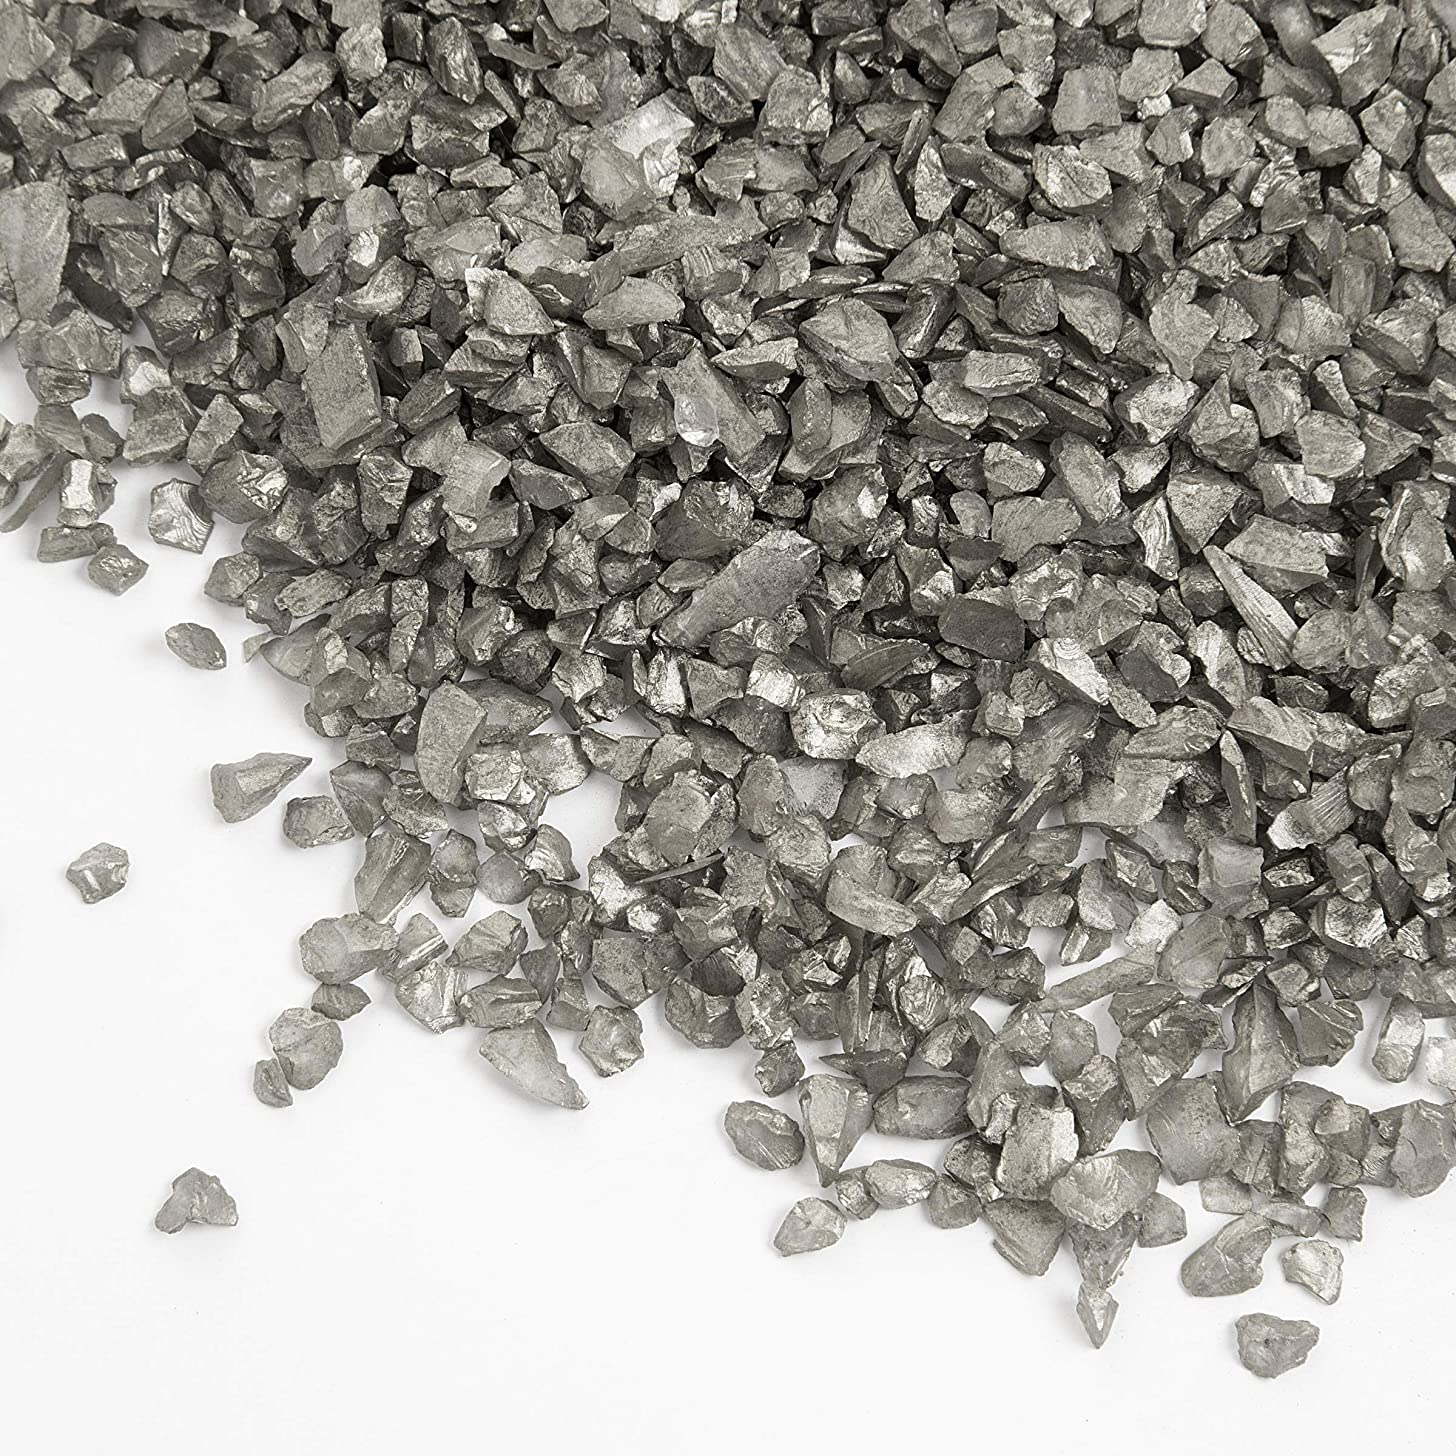 DARICE GS120 500G Crushed Glass Vase Filler/Chips, Silver